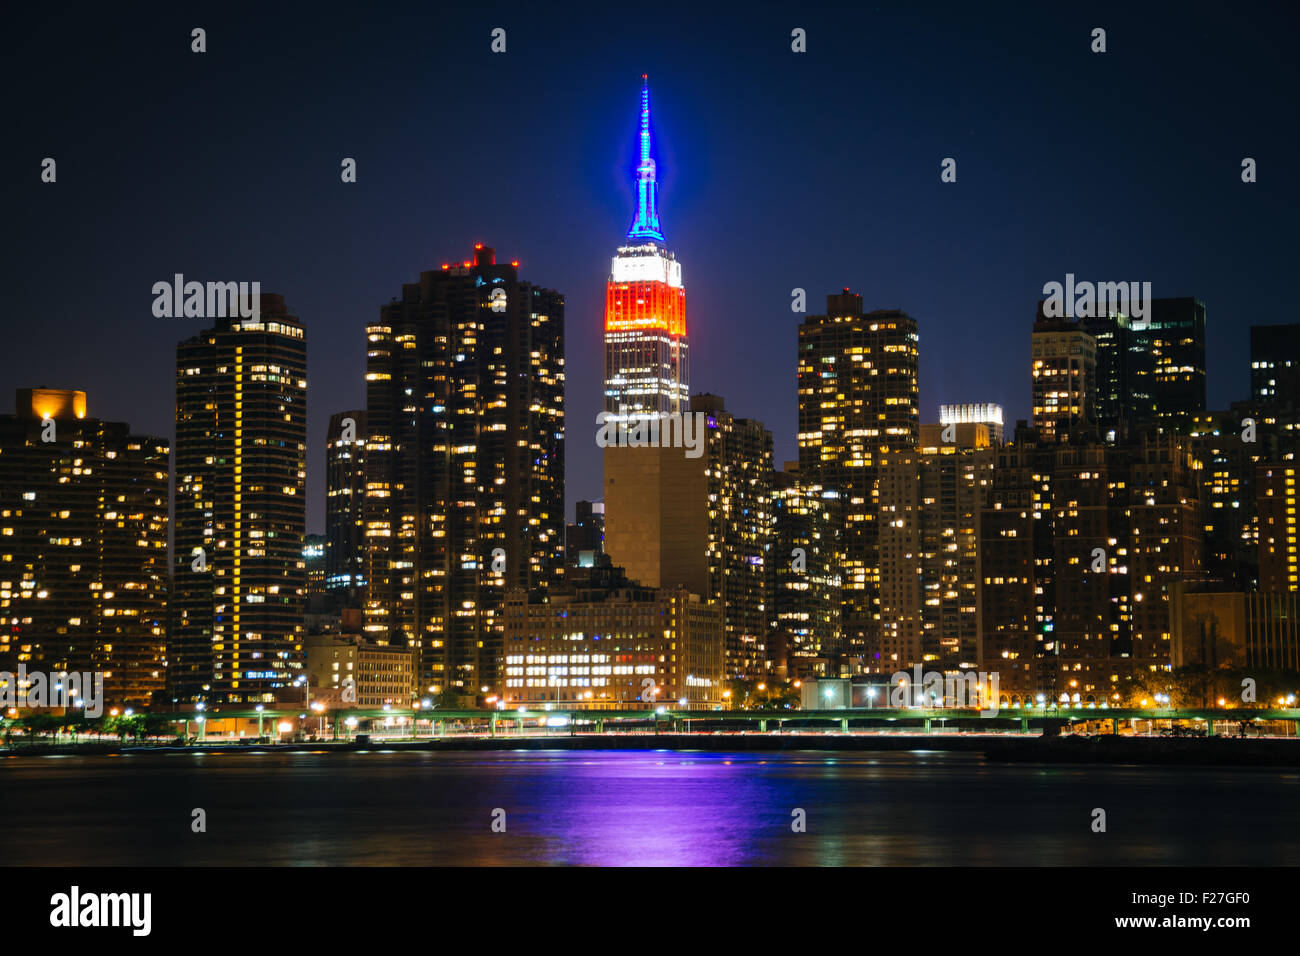 View of the Empire State Building from Gantry Plaza State Park, in Long Island City, Queens, New York. - Stock Image